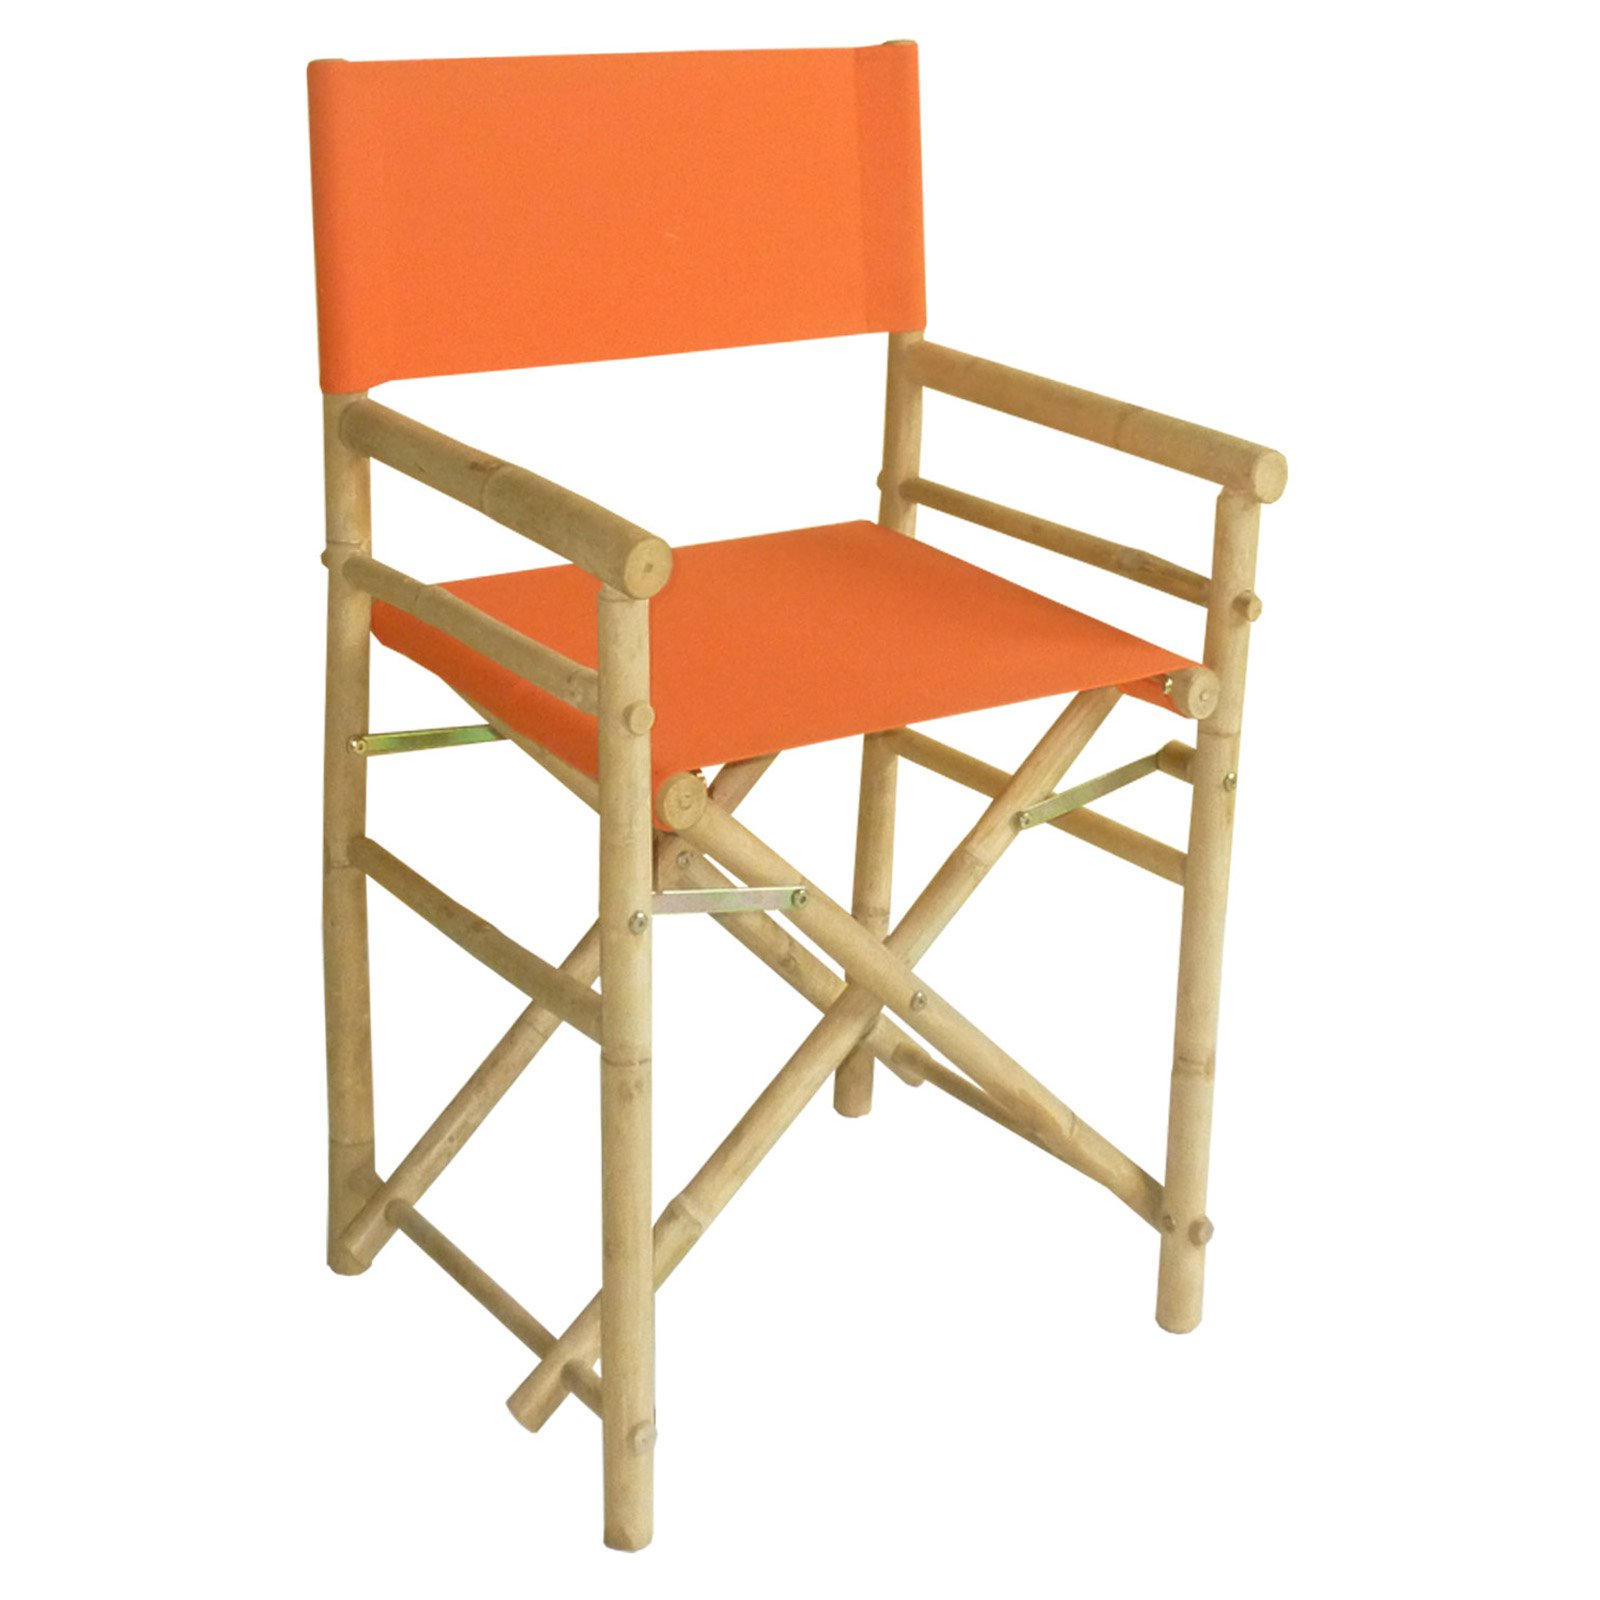 Bamboo Chairs Bamboo 18 Inch Standard Height Directors Chairs With Solid Cover Set Of 2